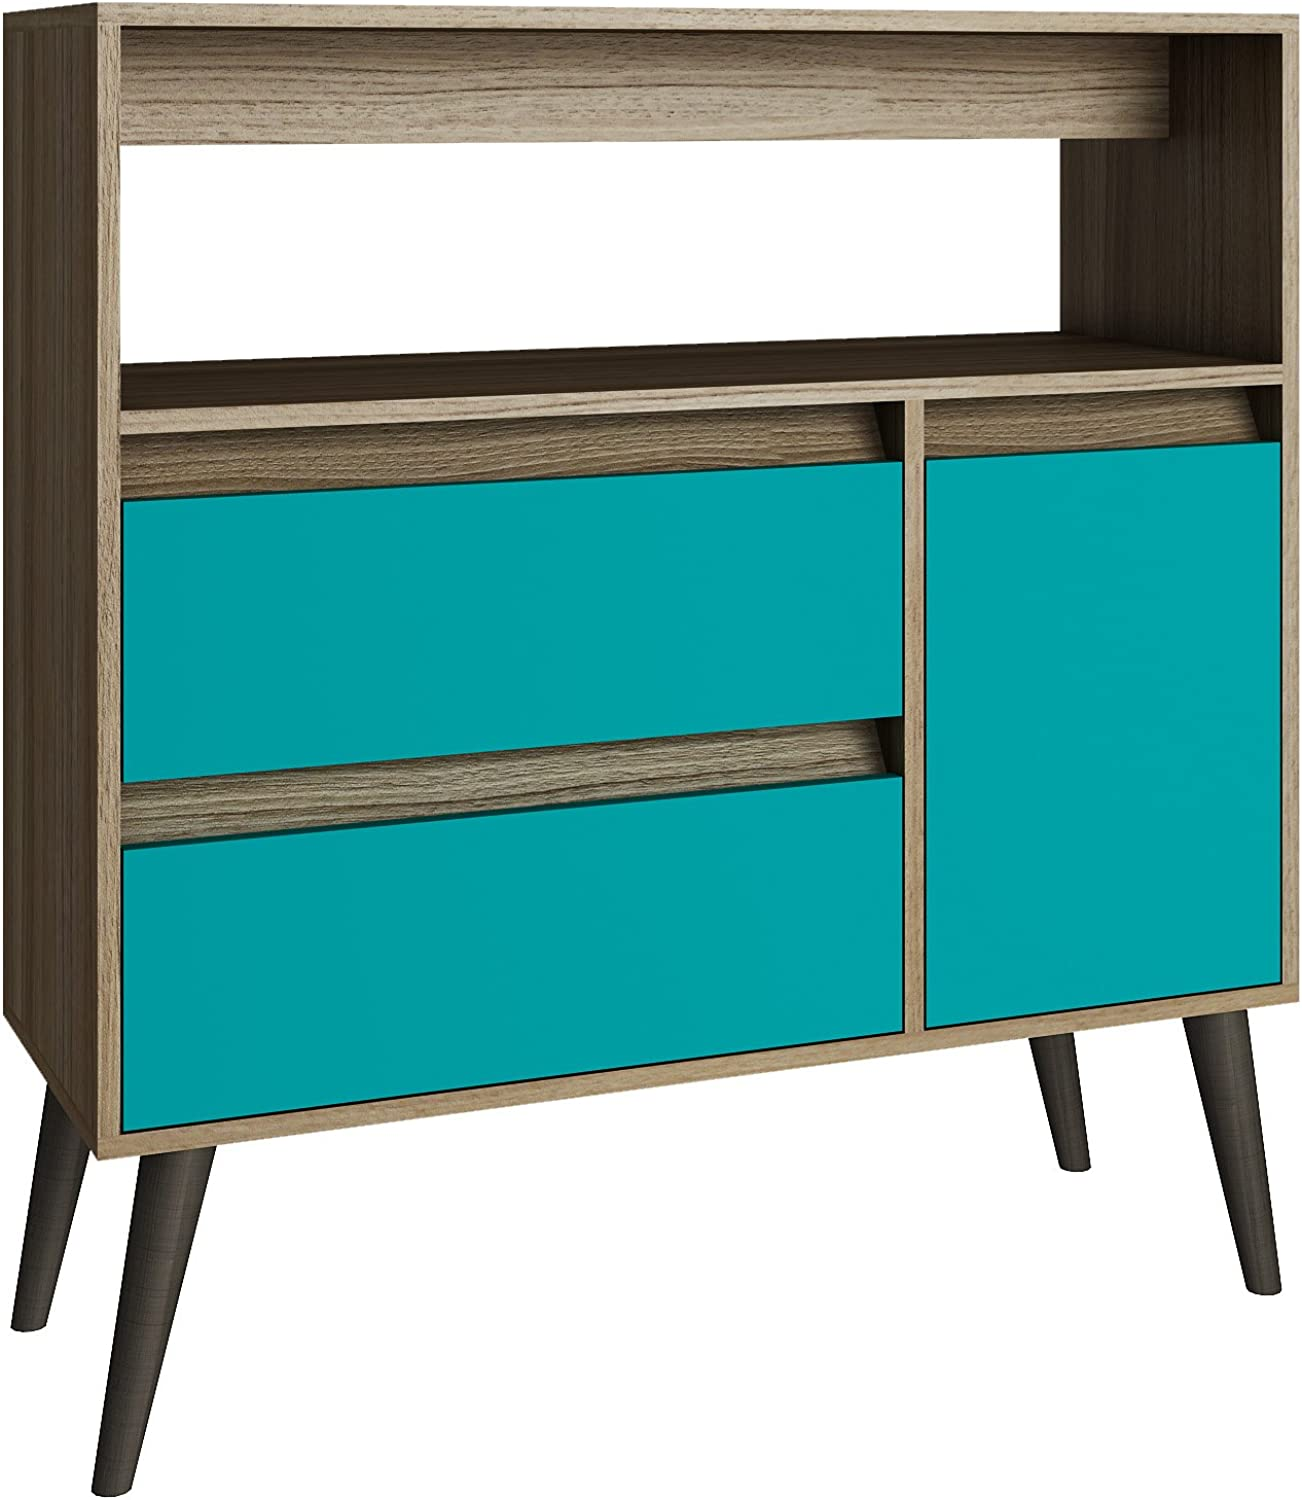 Manhattan Comfort Accentuations by Functional Gota High Side Table with 1-Shelf, 2-Drawers and 1-Door in Oak and Aqua